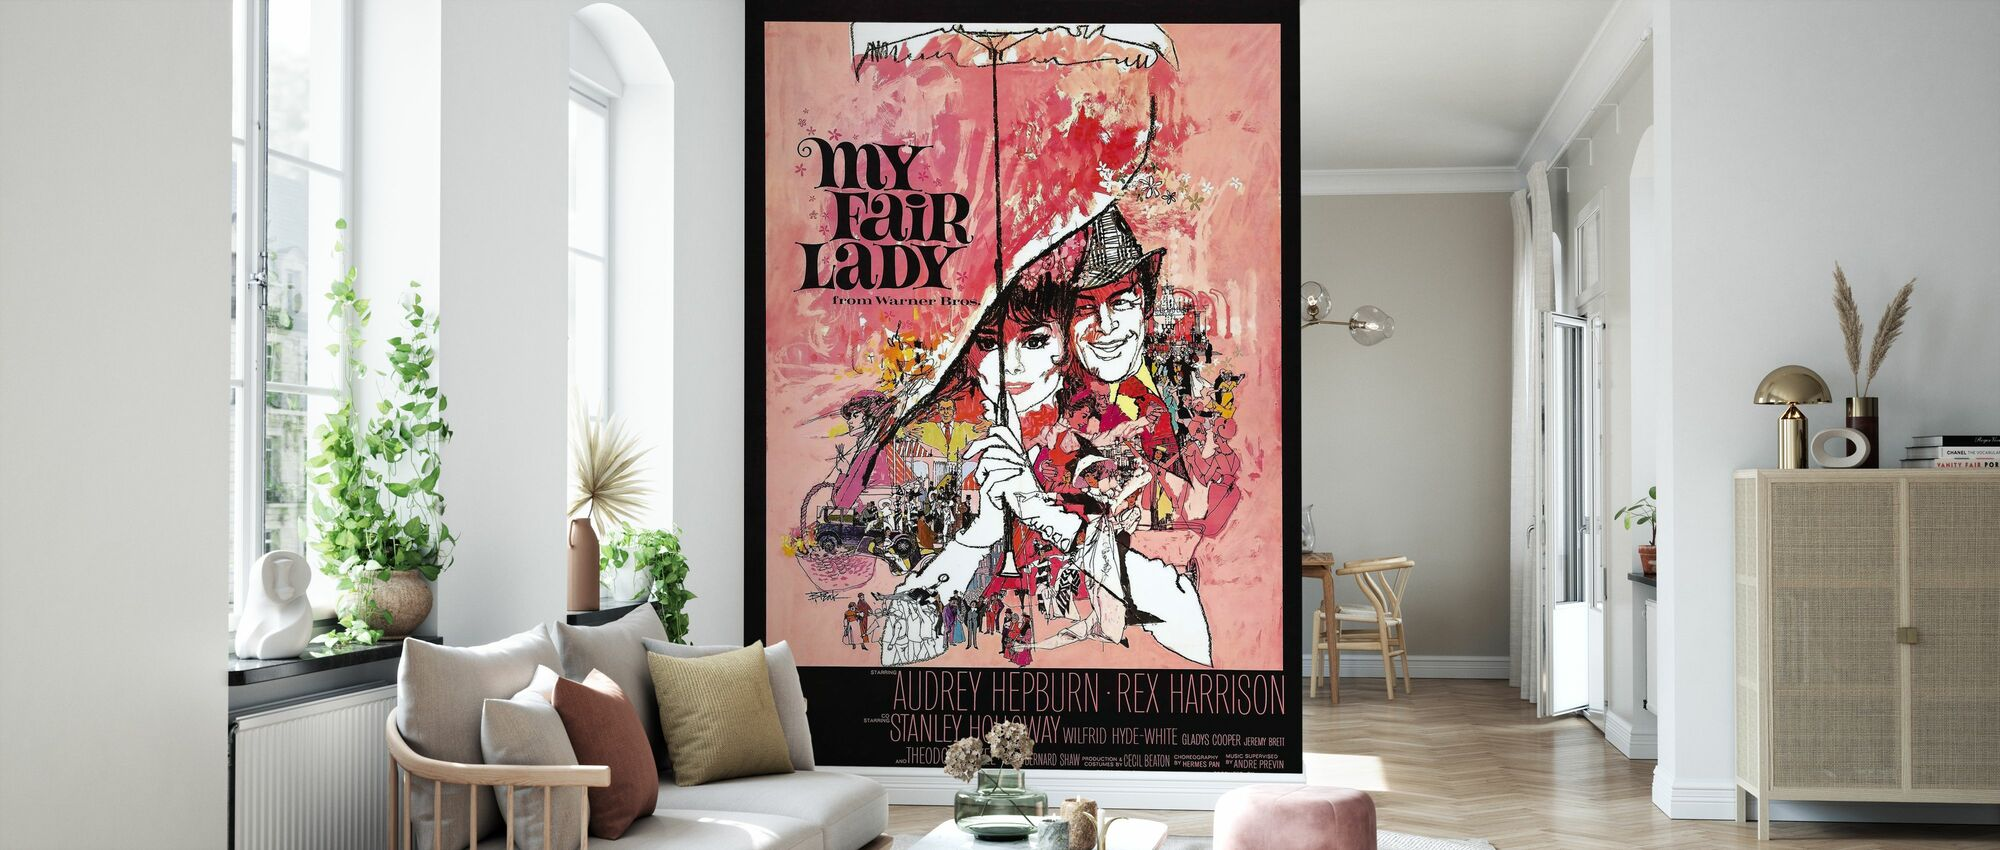 Movie Poster My Fair Lady - Wallpaper - Living Room